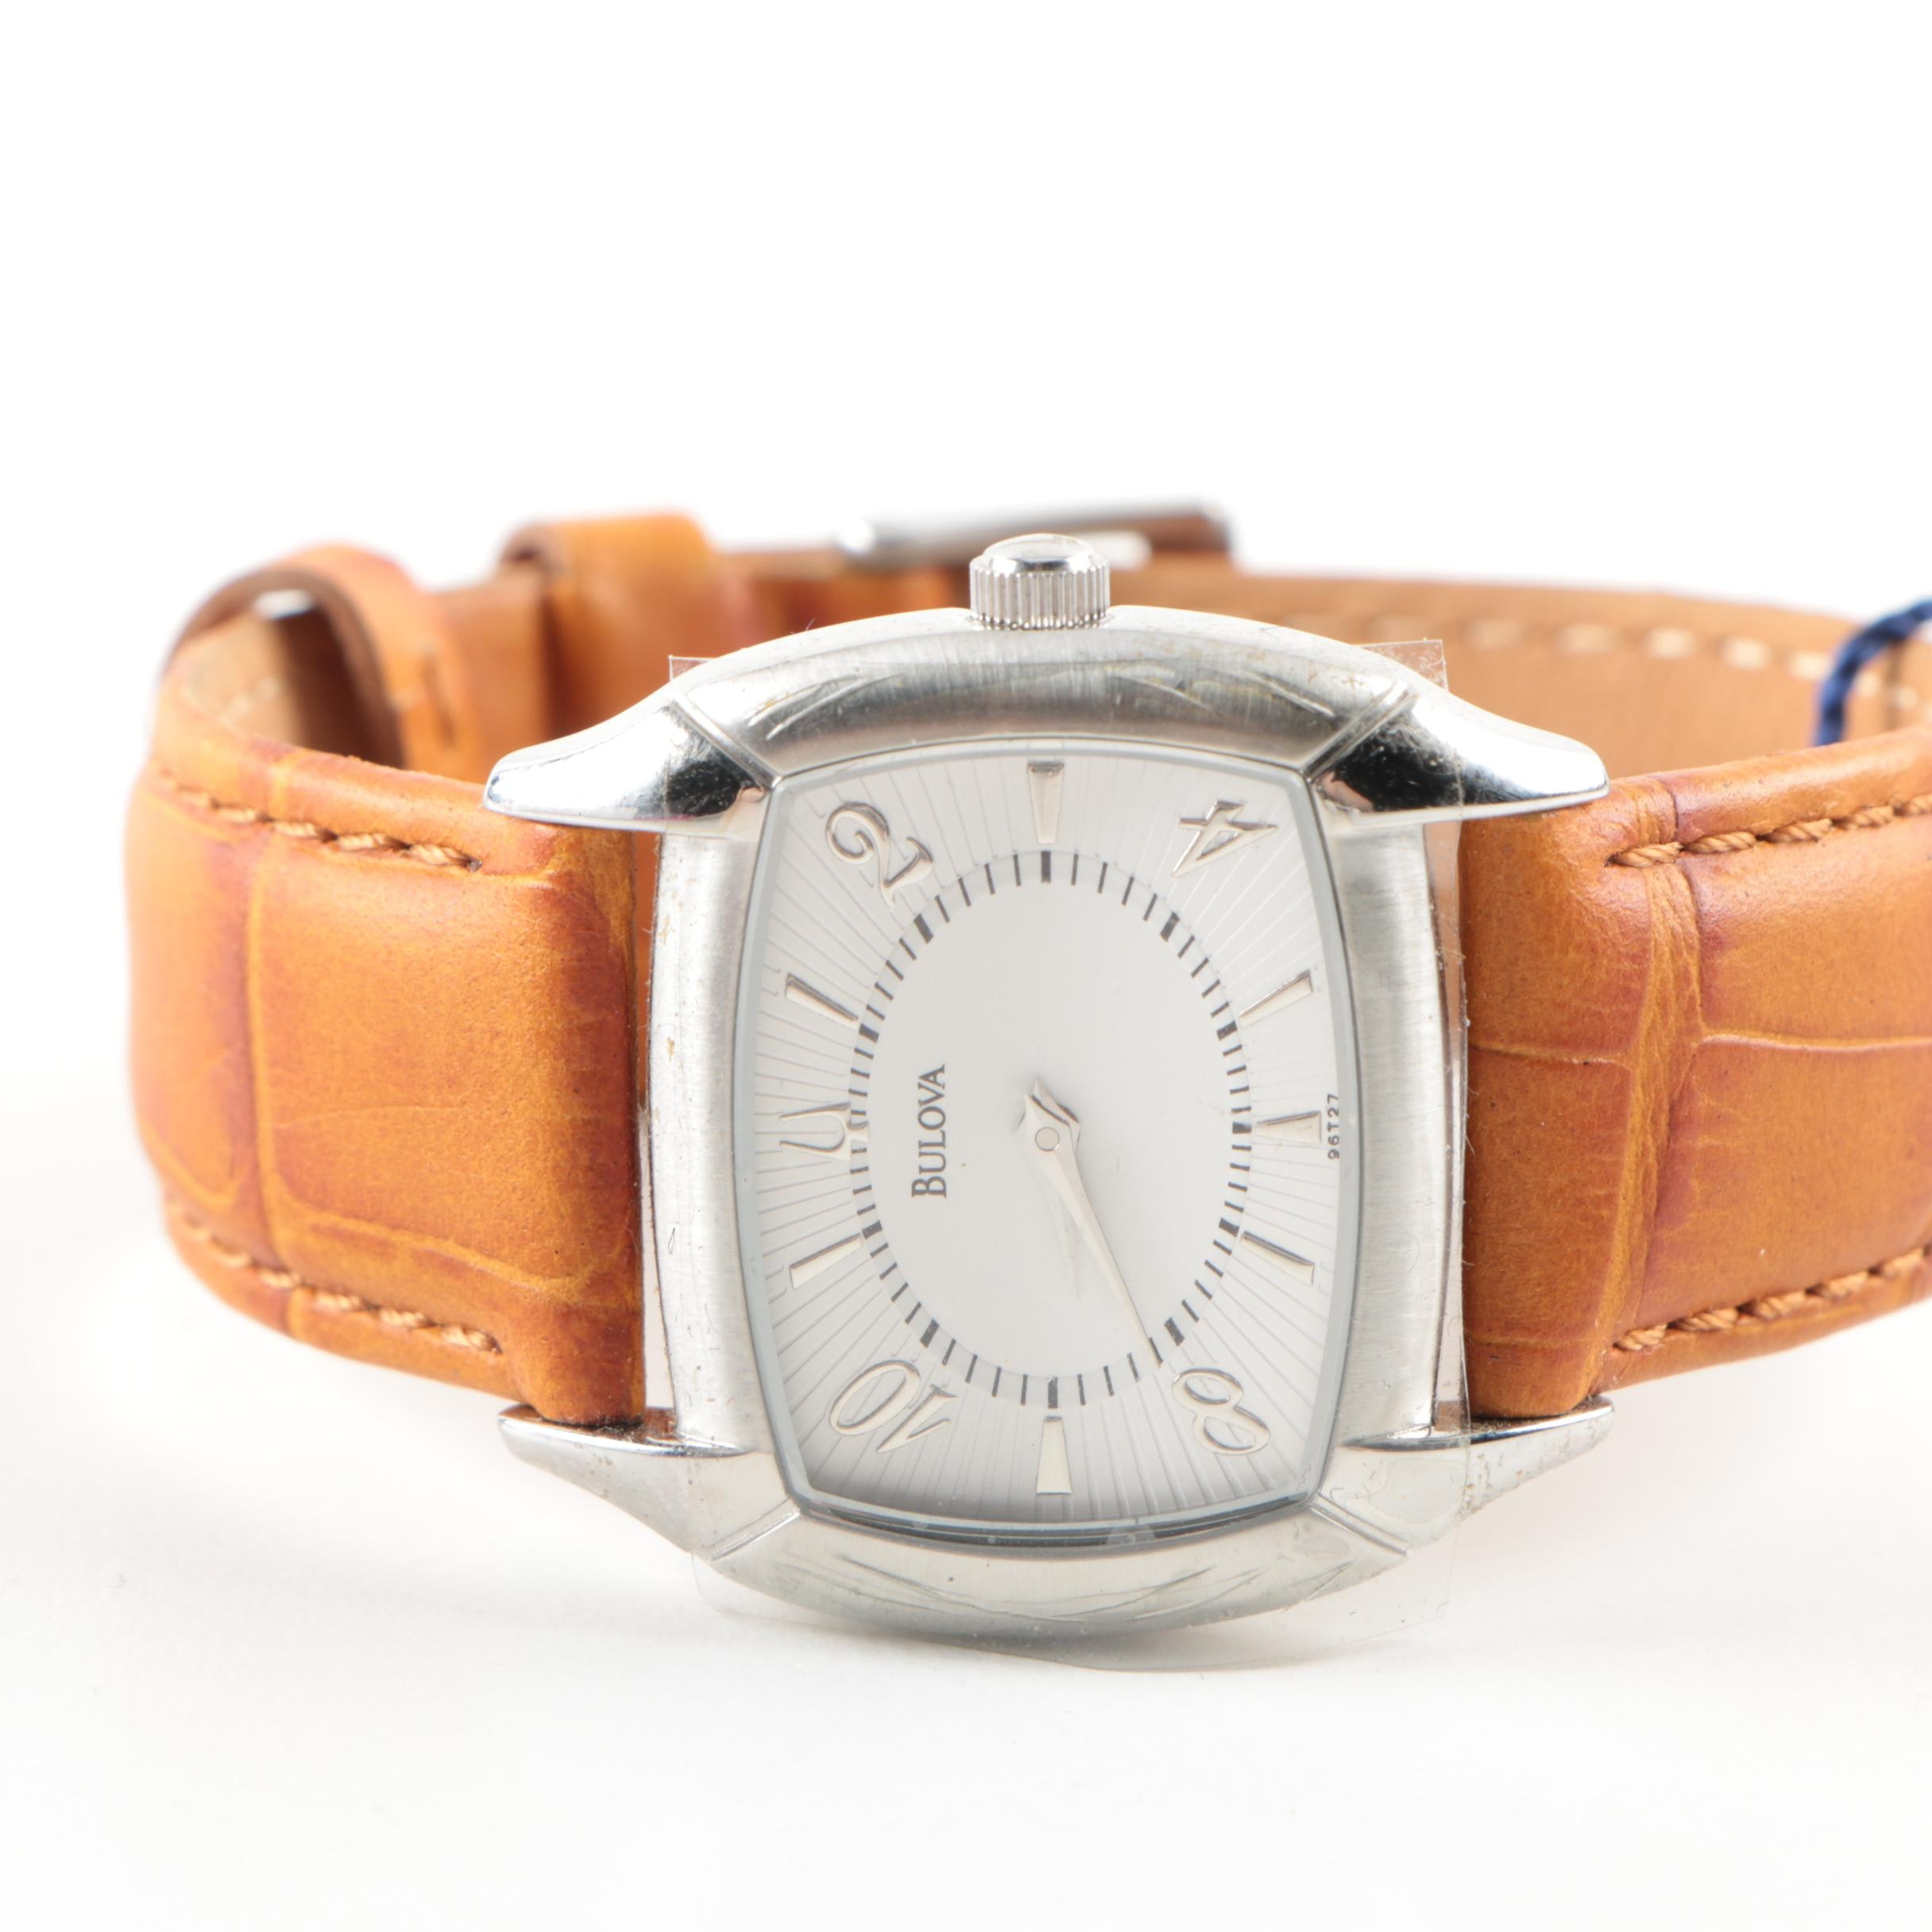 Bulova Stainless Steel and Leather Wristwatch